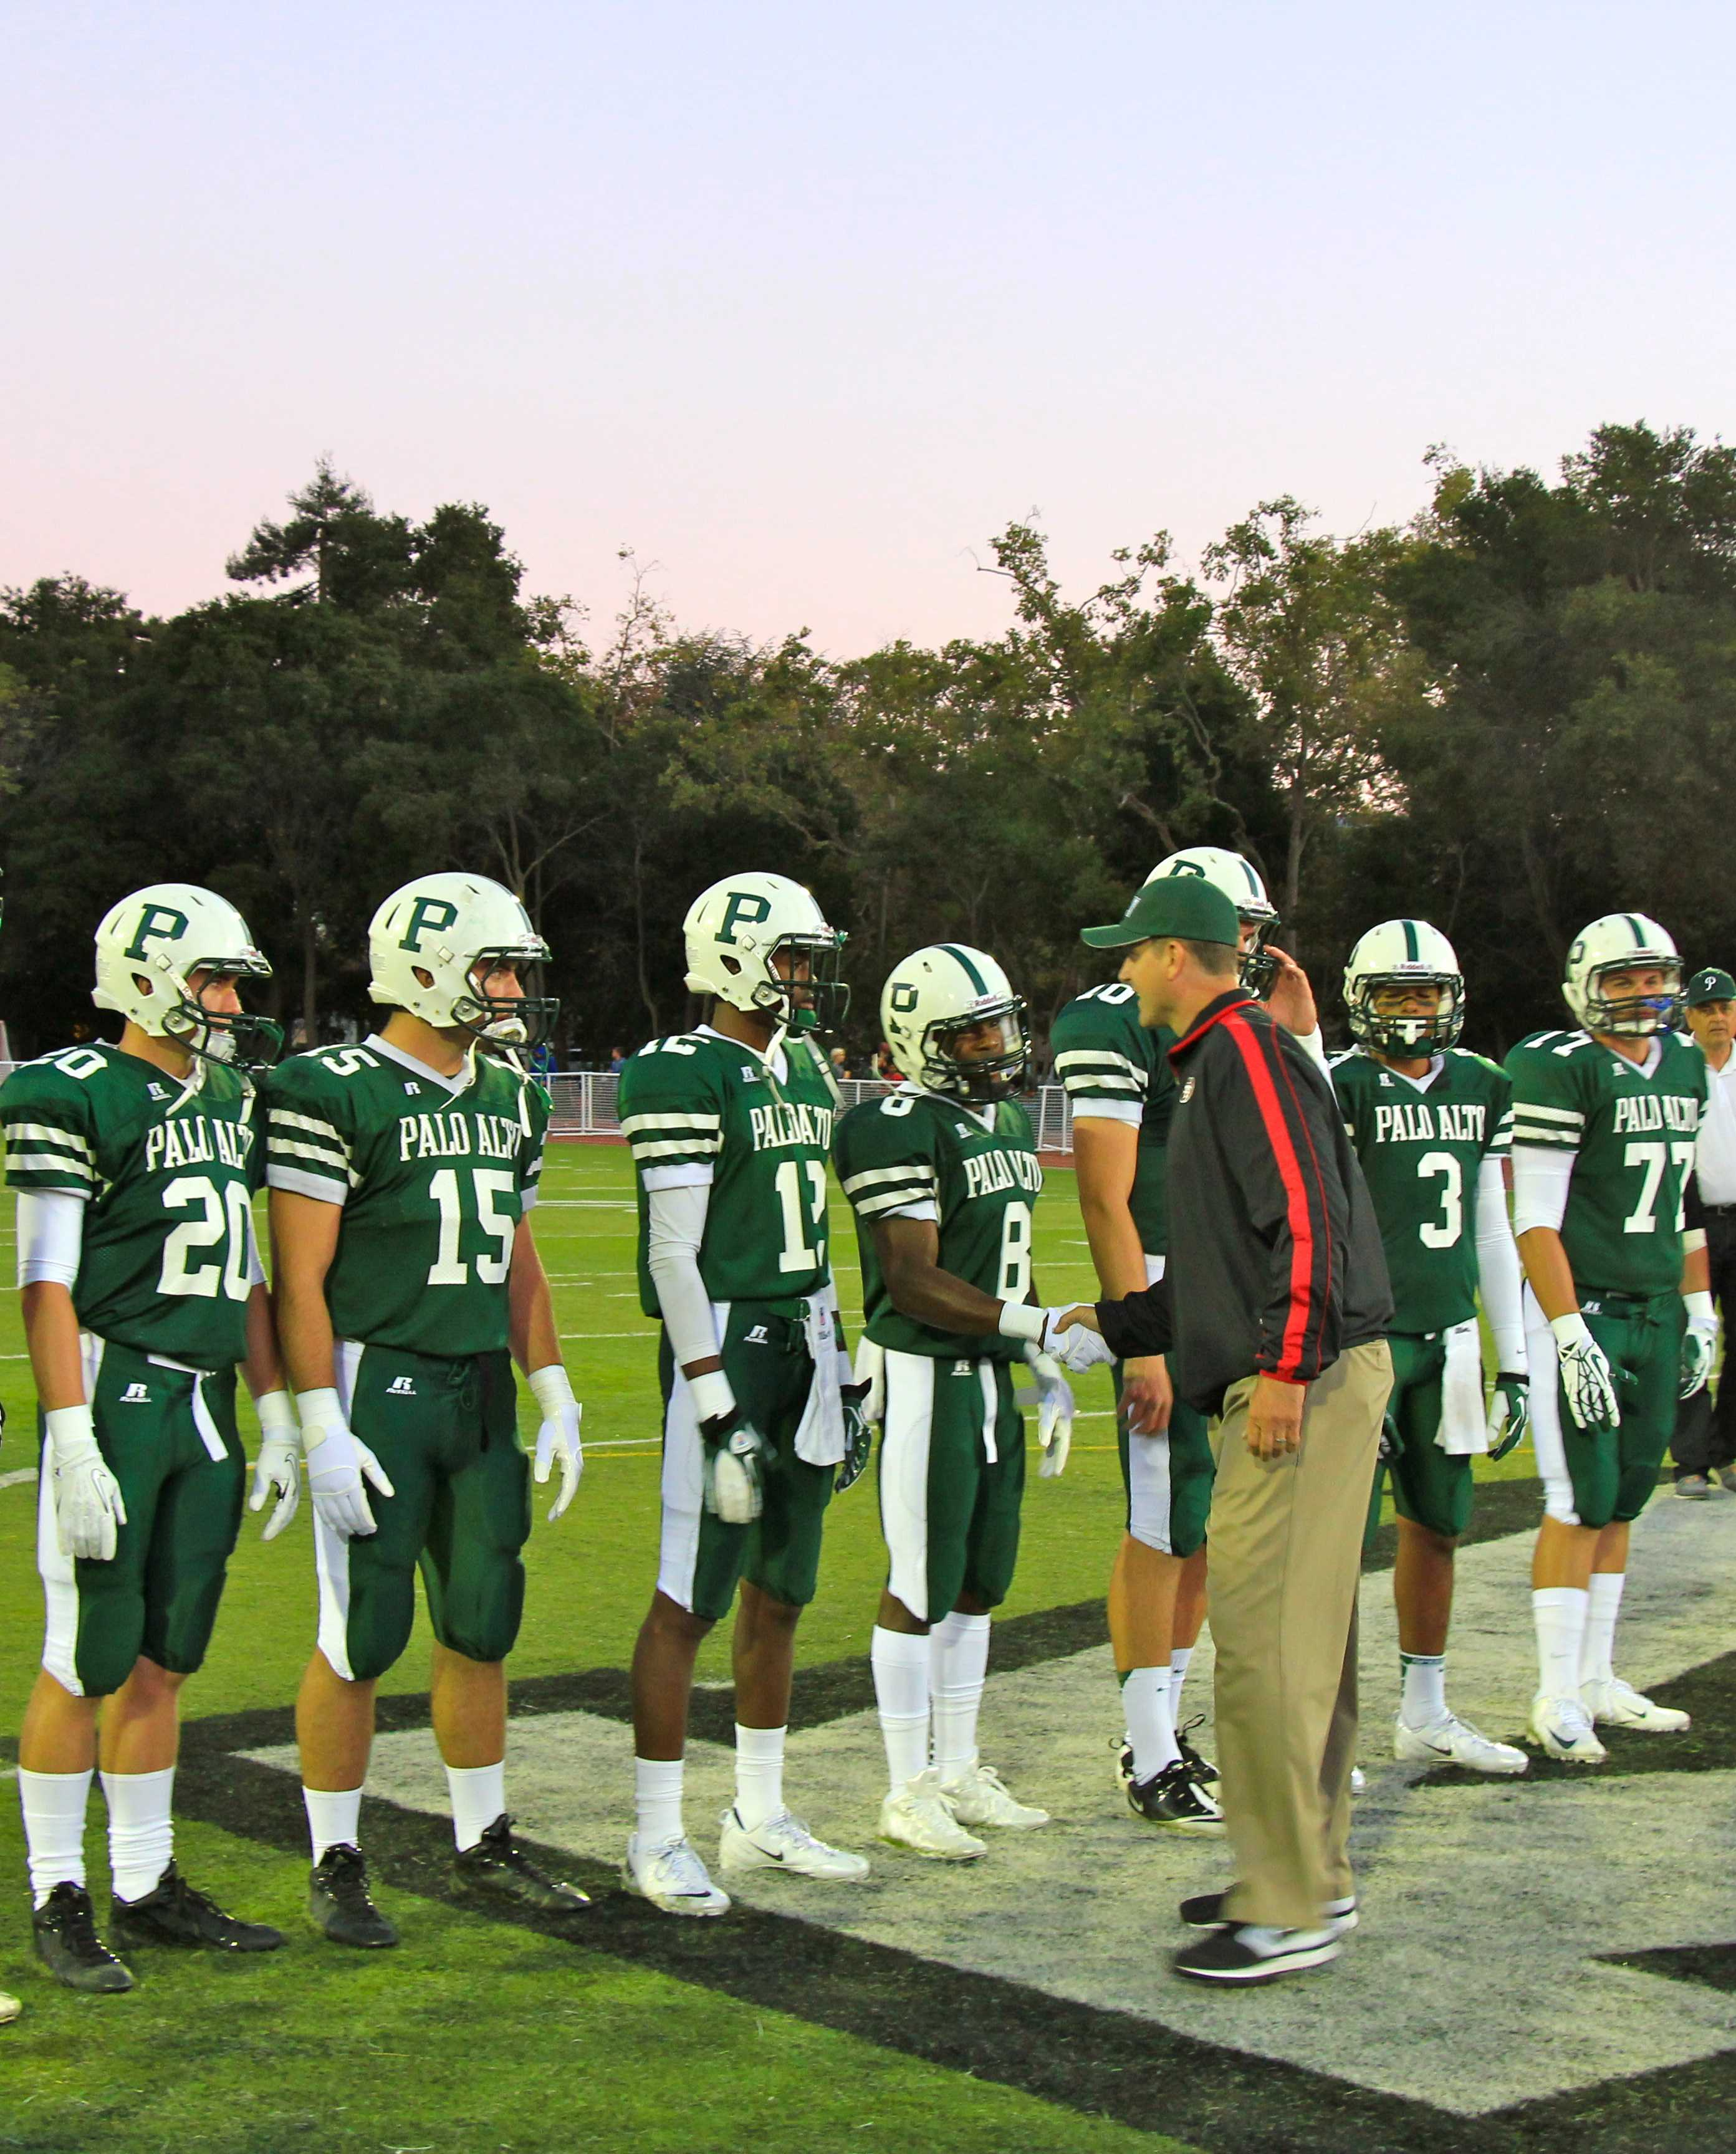 Harbaugh shakes hands with the Viking football captains. Photo by Scott Andrews